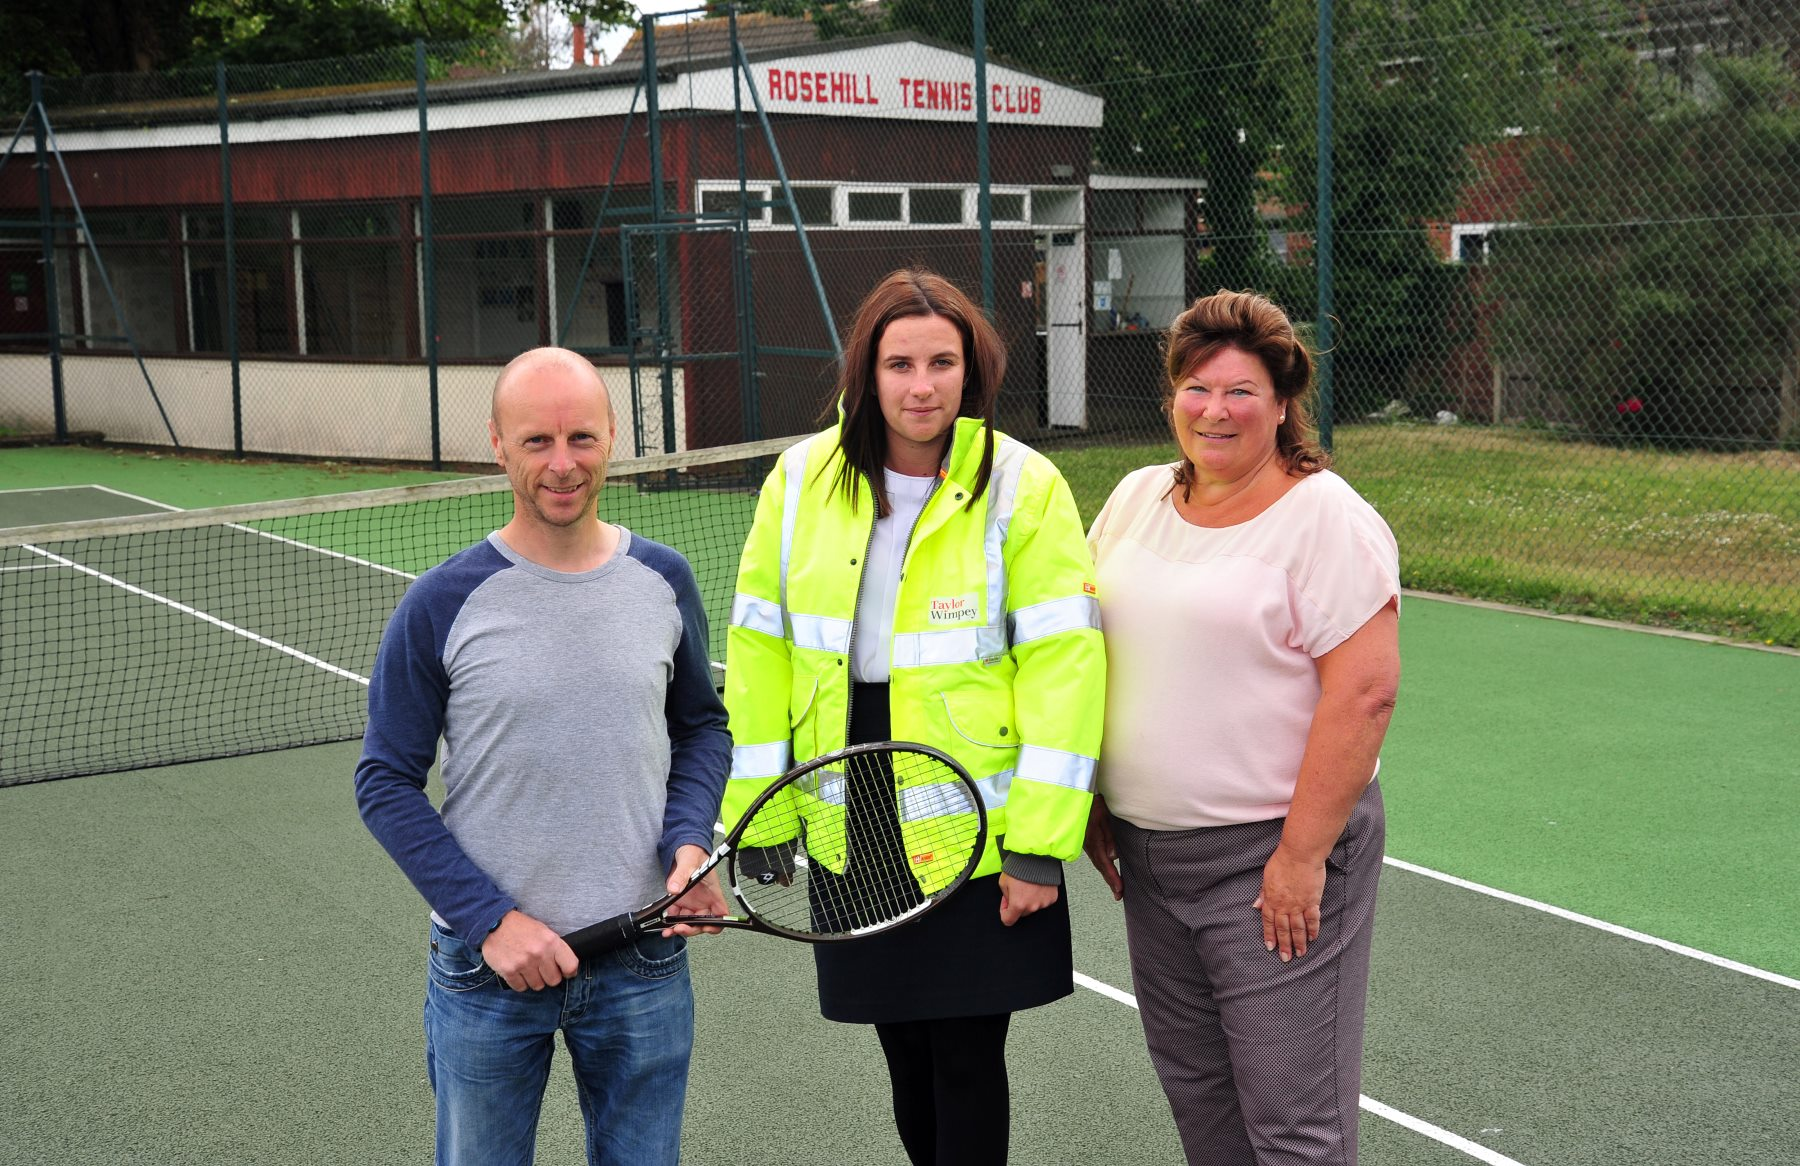 Rose Hill is the only tennis club in Ashton-under-Lyne